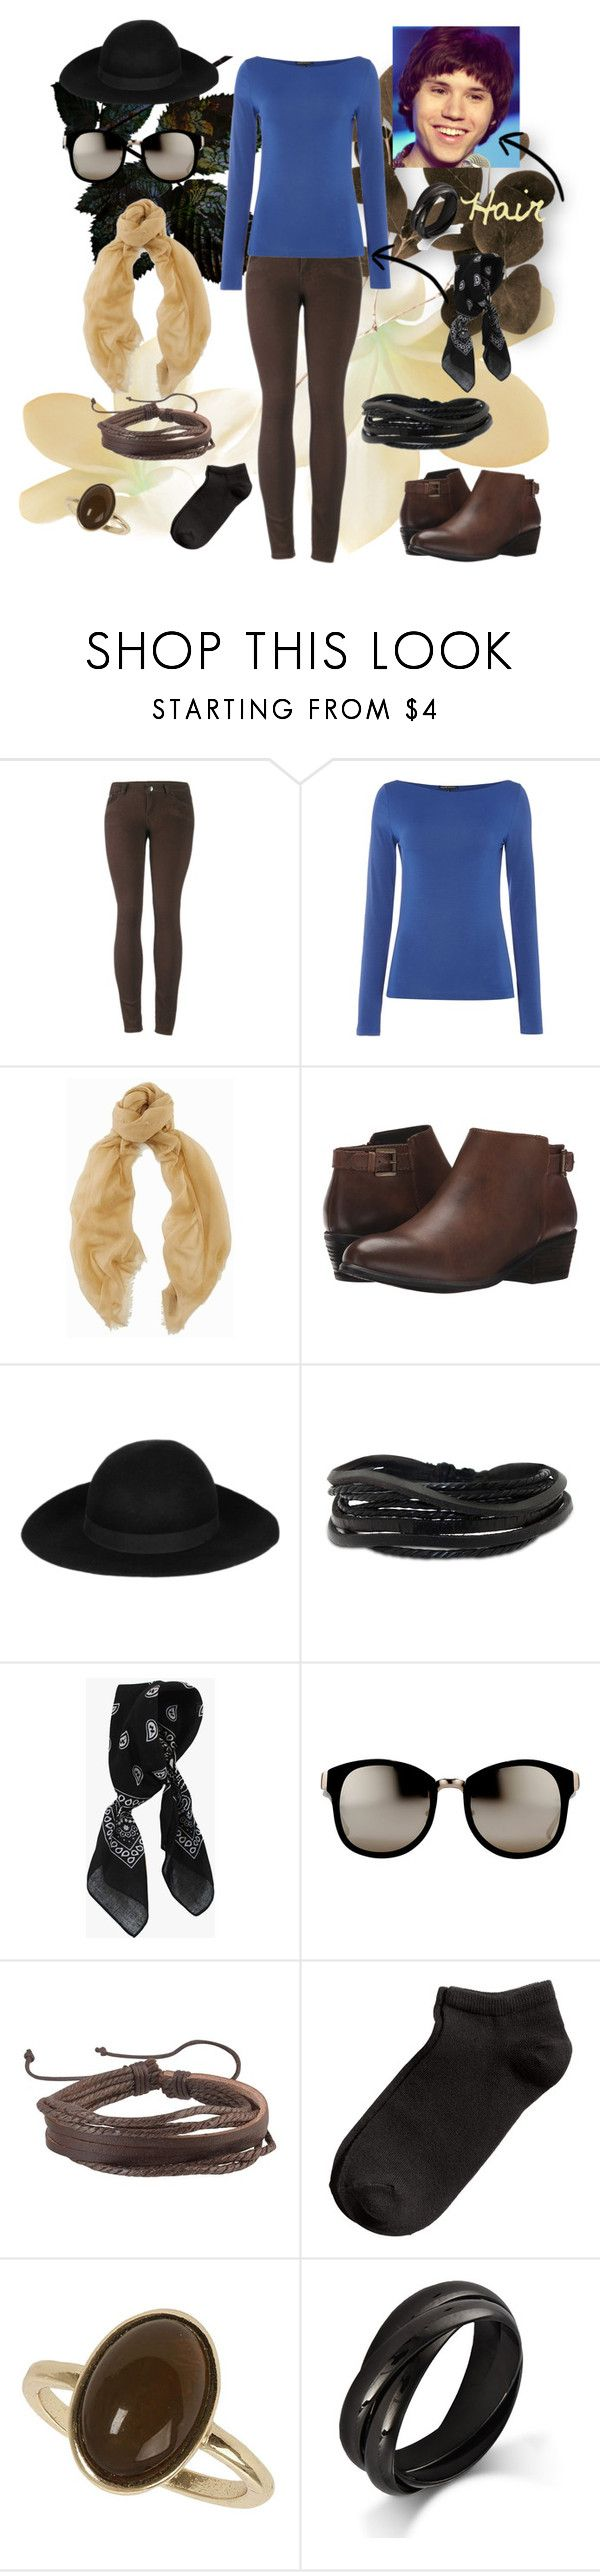 """""""Inspired by Ryan Ross (#3)"""" by jade-ross1999 ❤ liked on Polyvore featuring 2LUV, Sarah Pacini, Ralph Lauren, Blondo, George J. Love, Zodaca, Linda Farrow, Dorothy Perkins, cute and pretty"""